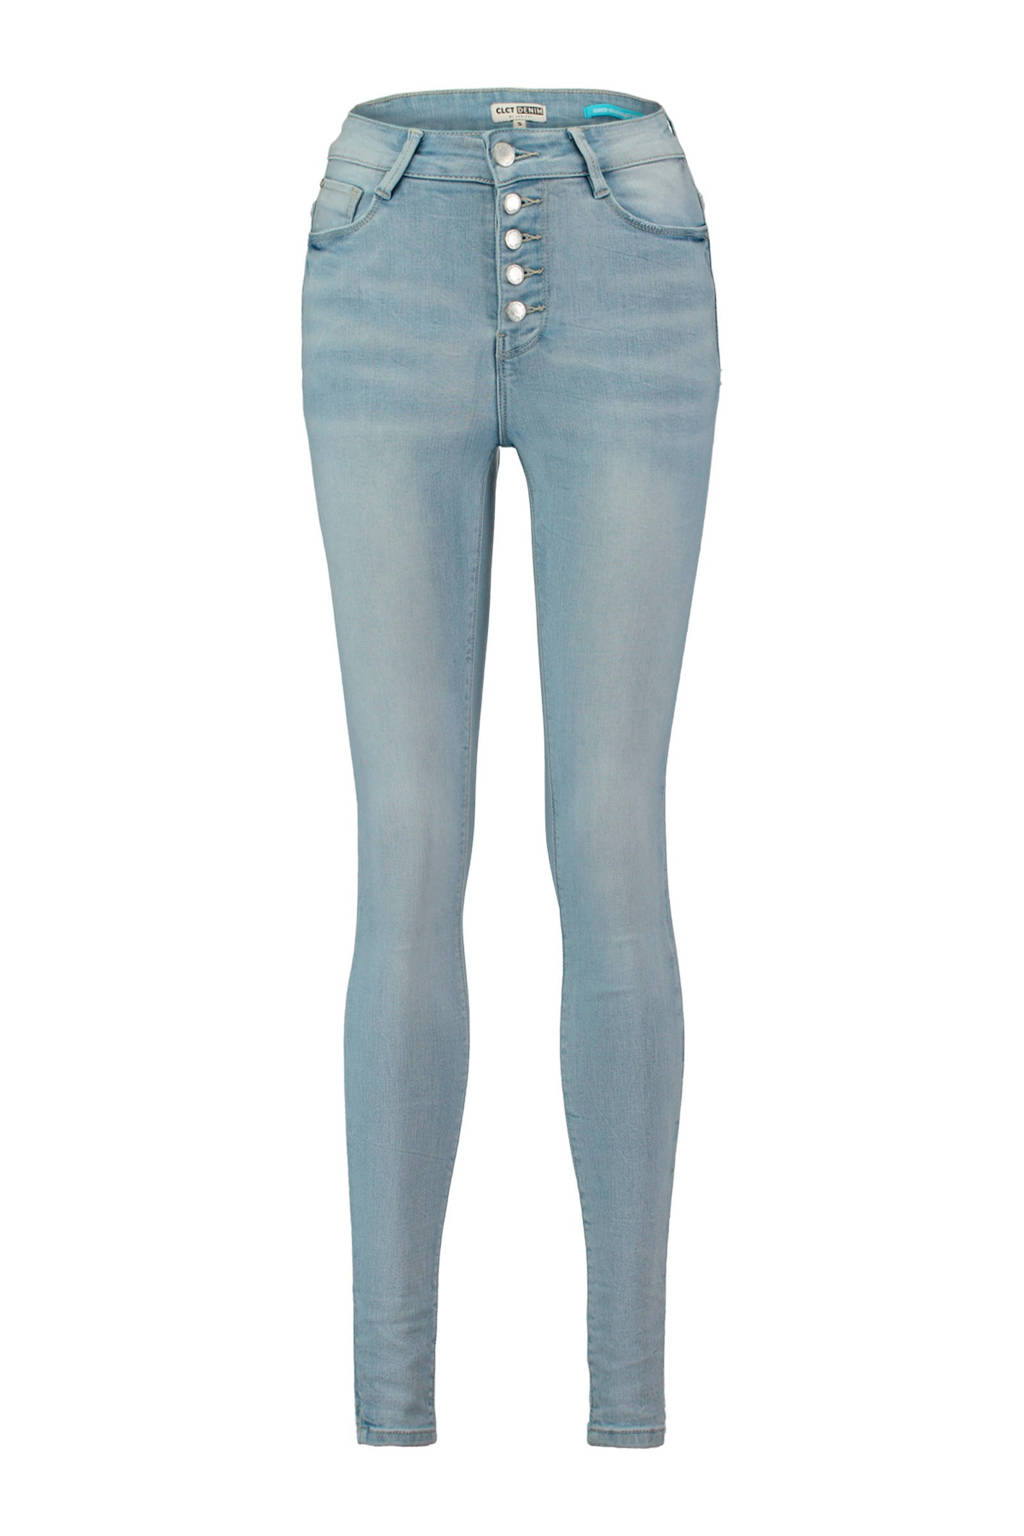 CoolCat high waist skinny jeans, Stonebleached